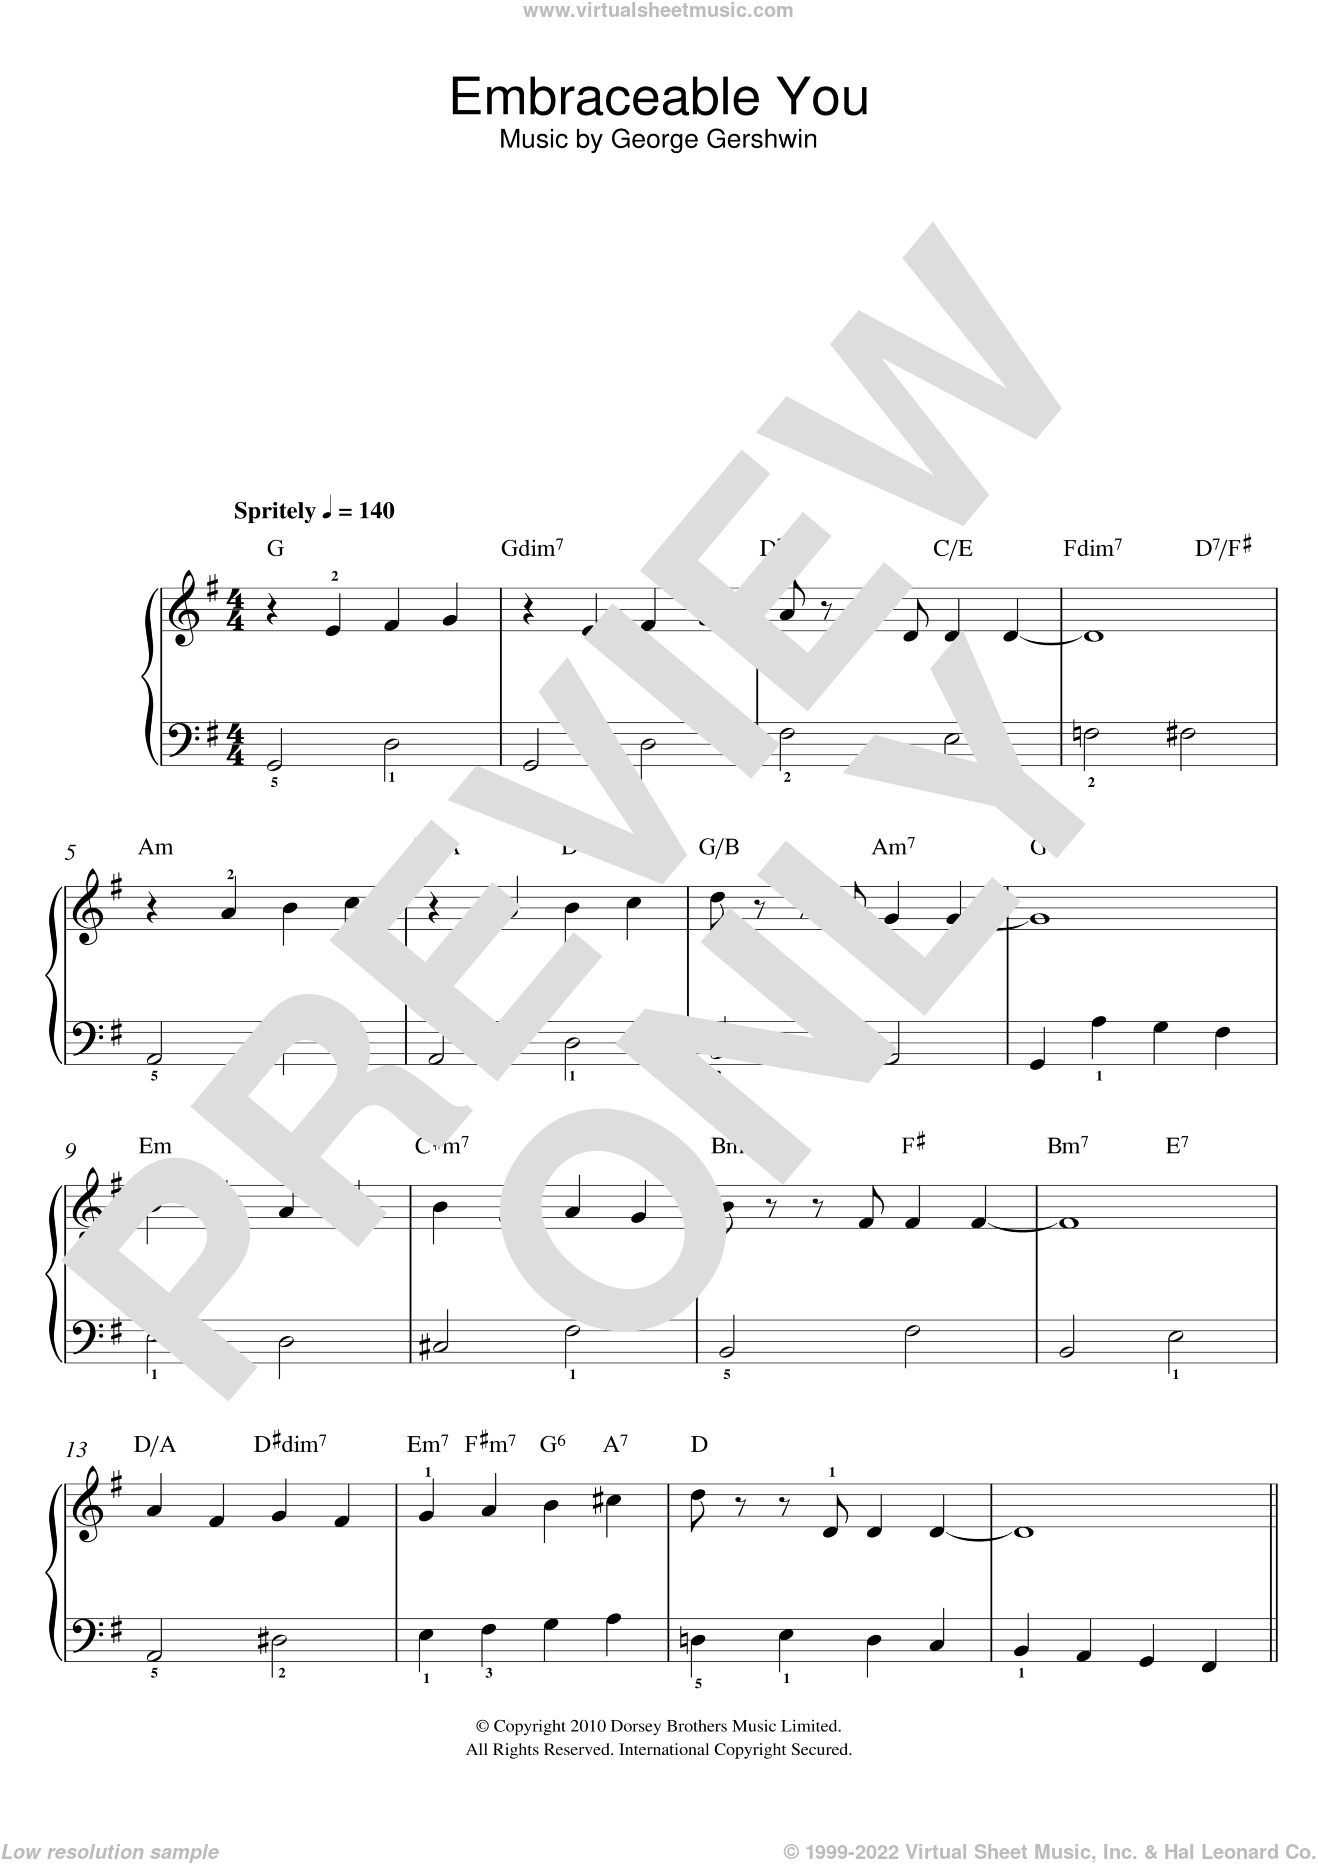 Embraceable You sheet music for piano solo by George Gershwin